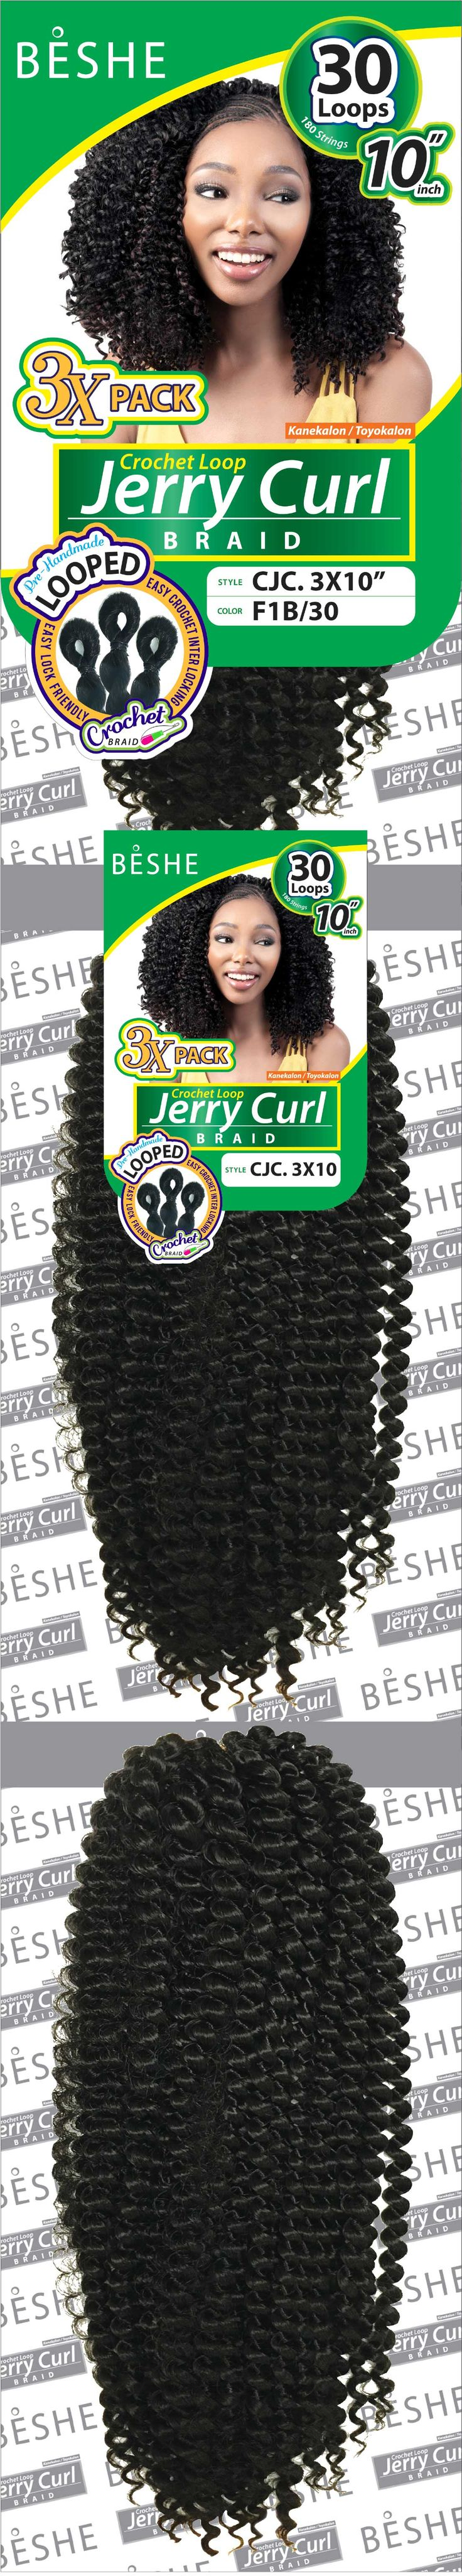 Crochet Braids Xpression Multi : pre looped crochet hair curl crochet crochet braids beshe multi multi ...